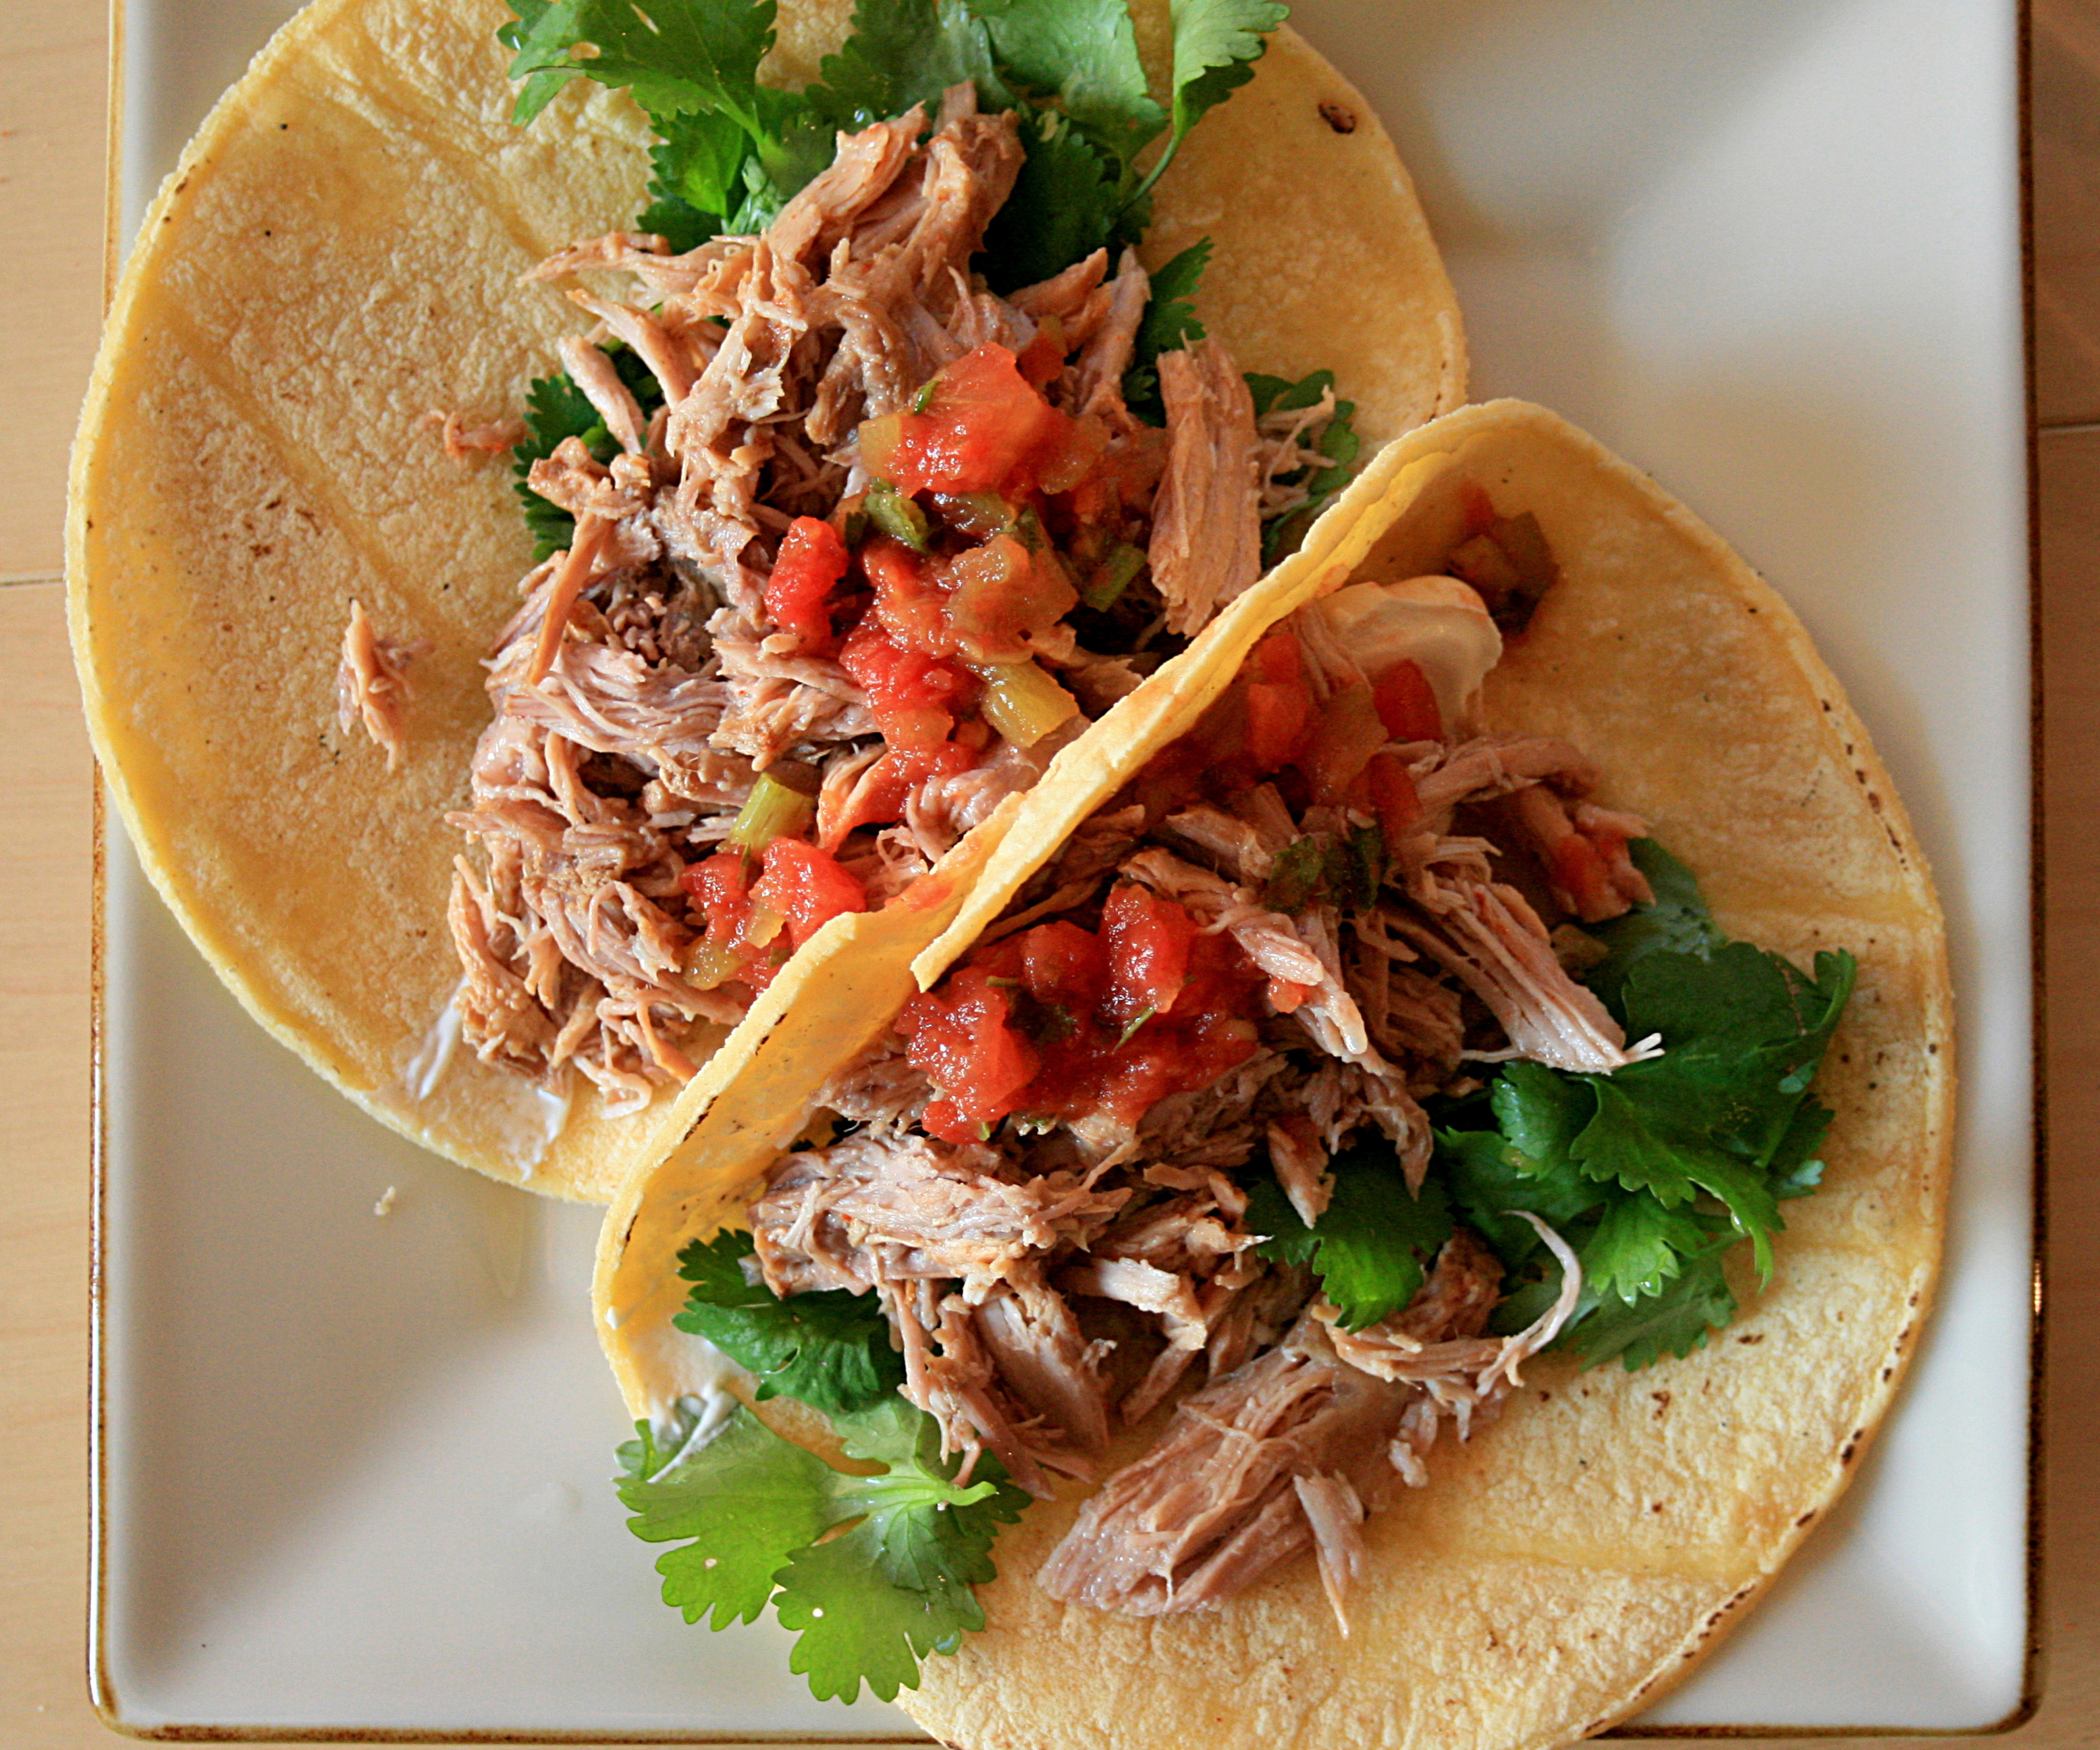 File:Carnitas.jpg - Wikipedia, the free encyclopedia